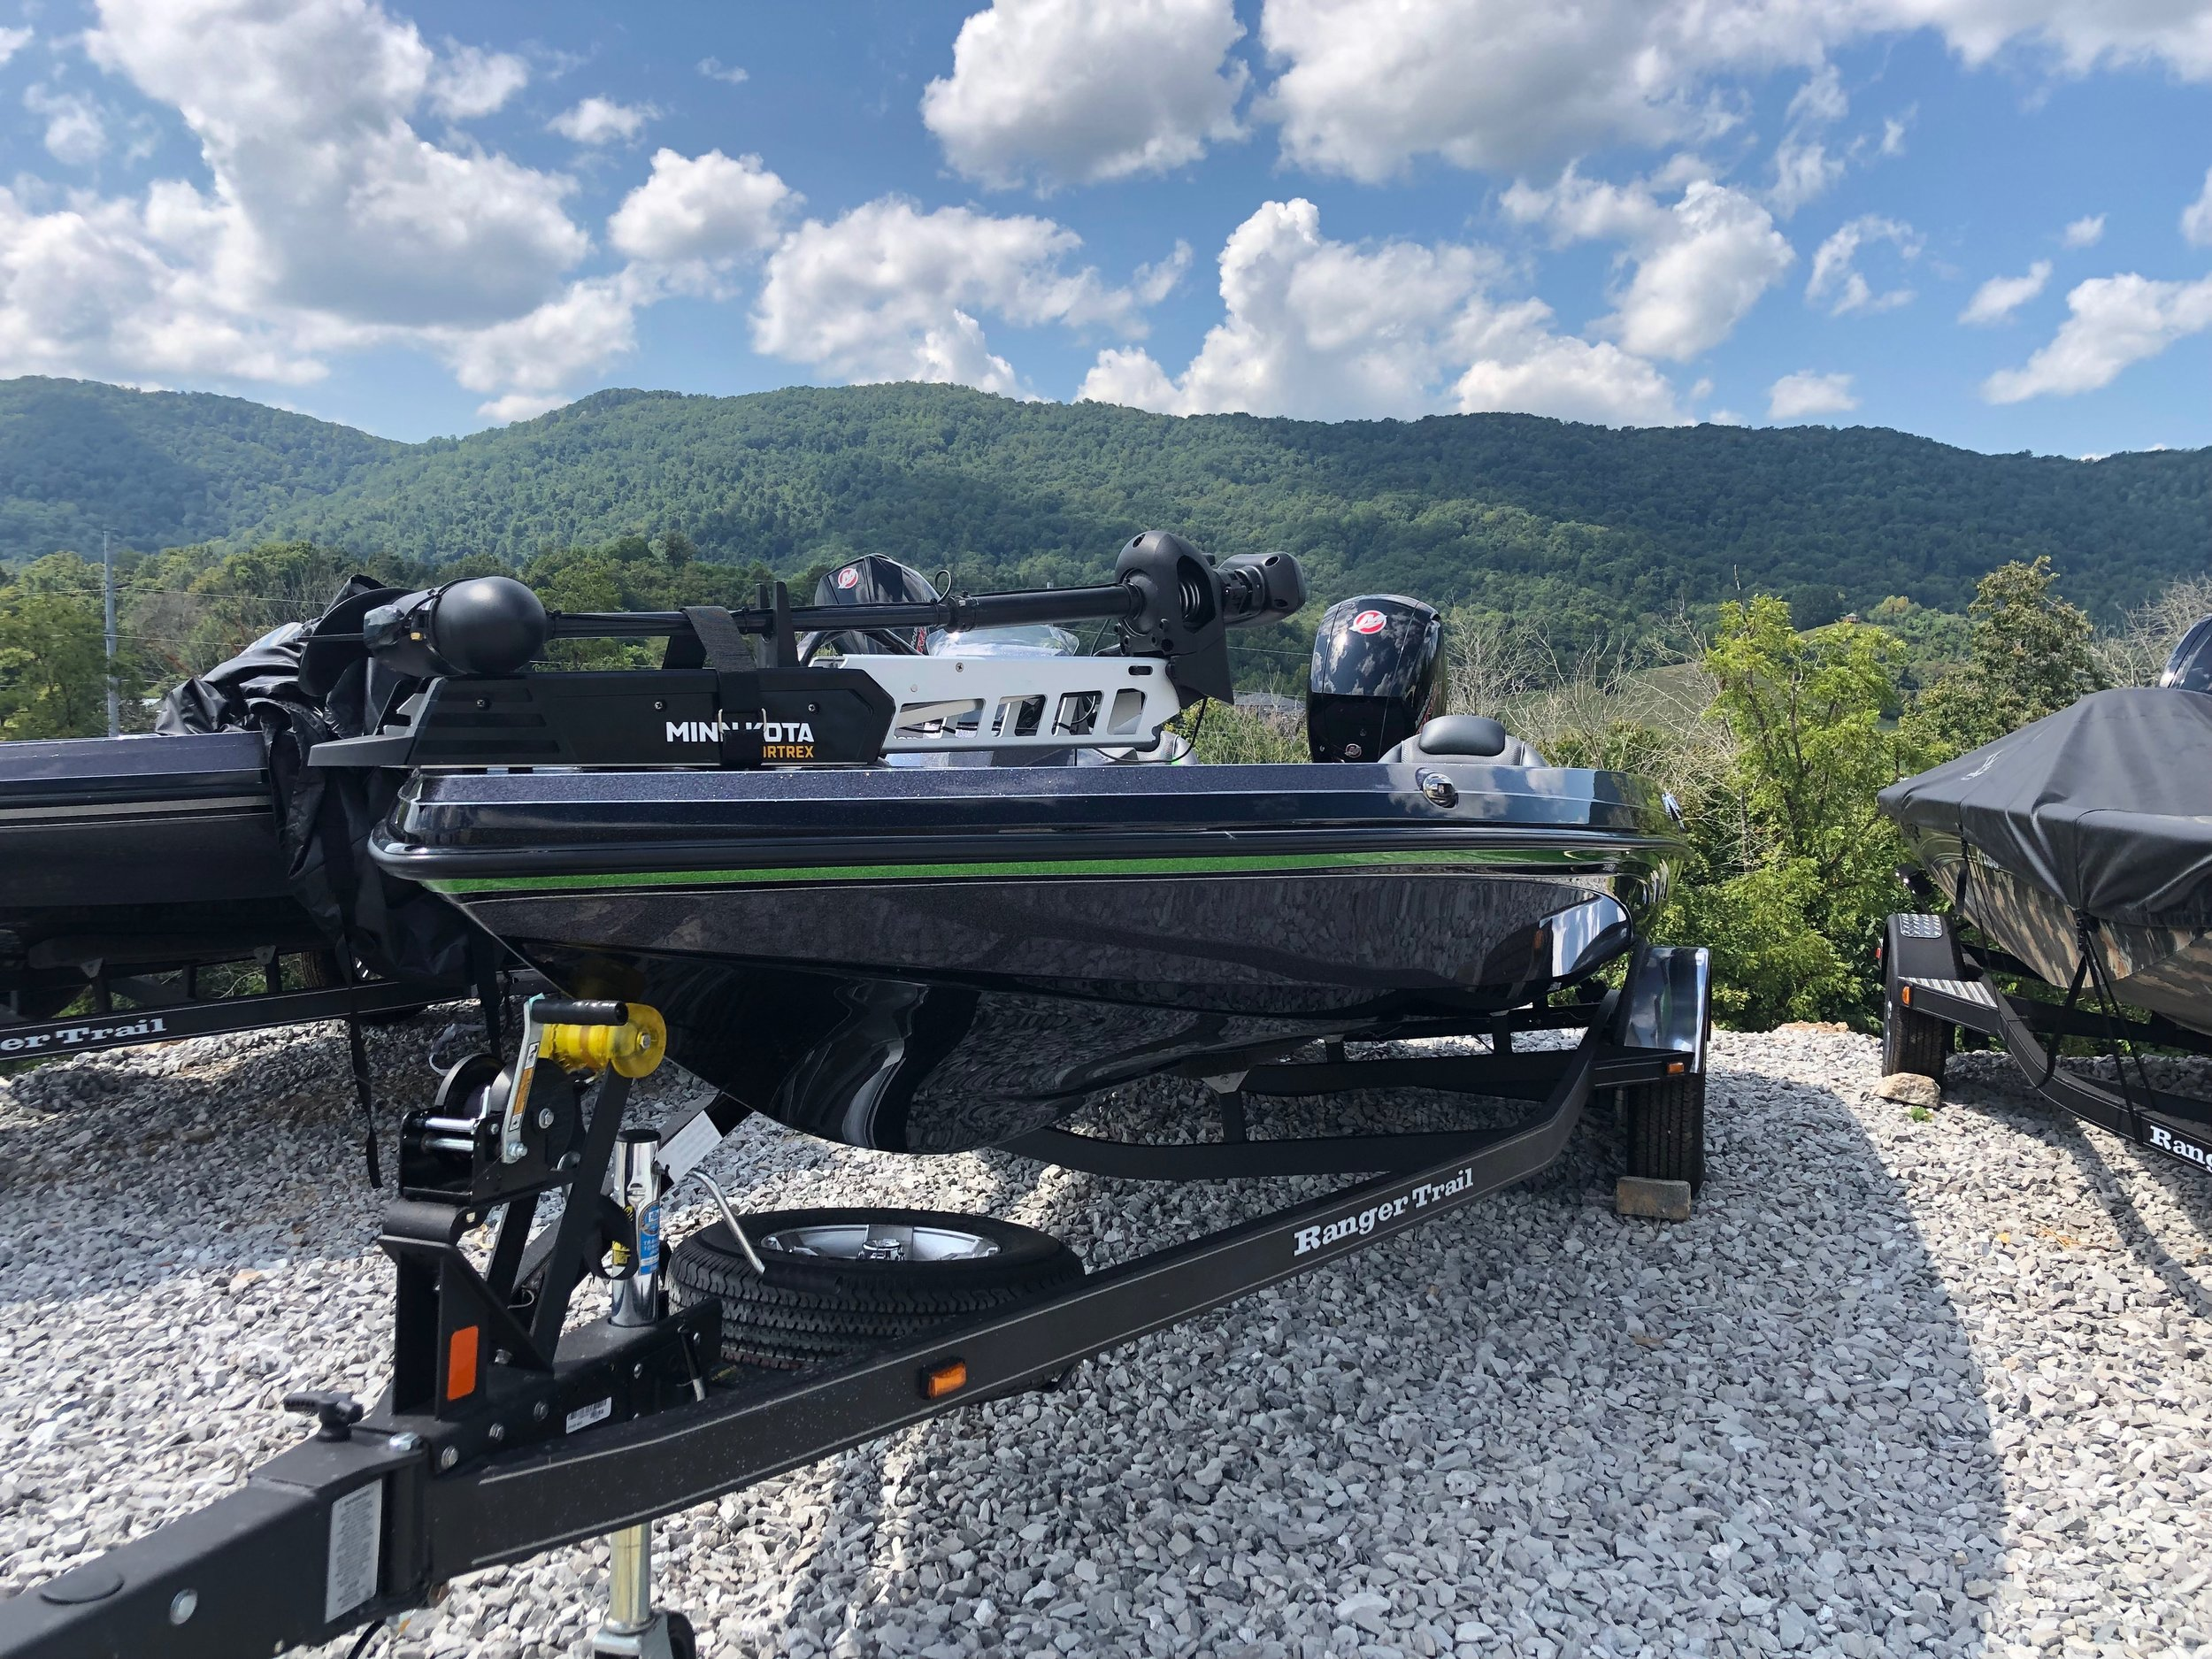 Ranger z185 - This black Z185 Ranger has green accents and includes extra seats, two Lowrance depth finders, cover, mercury 150 pro, plenty of storage, trailer, extra tire, and a Minn Kota Minn fortrex. Call for price!! Click here for more pictures.